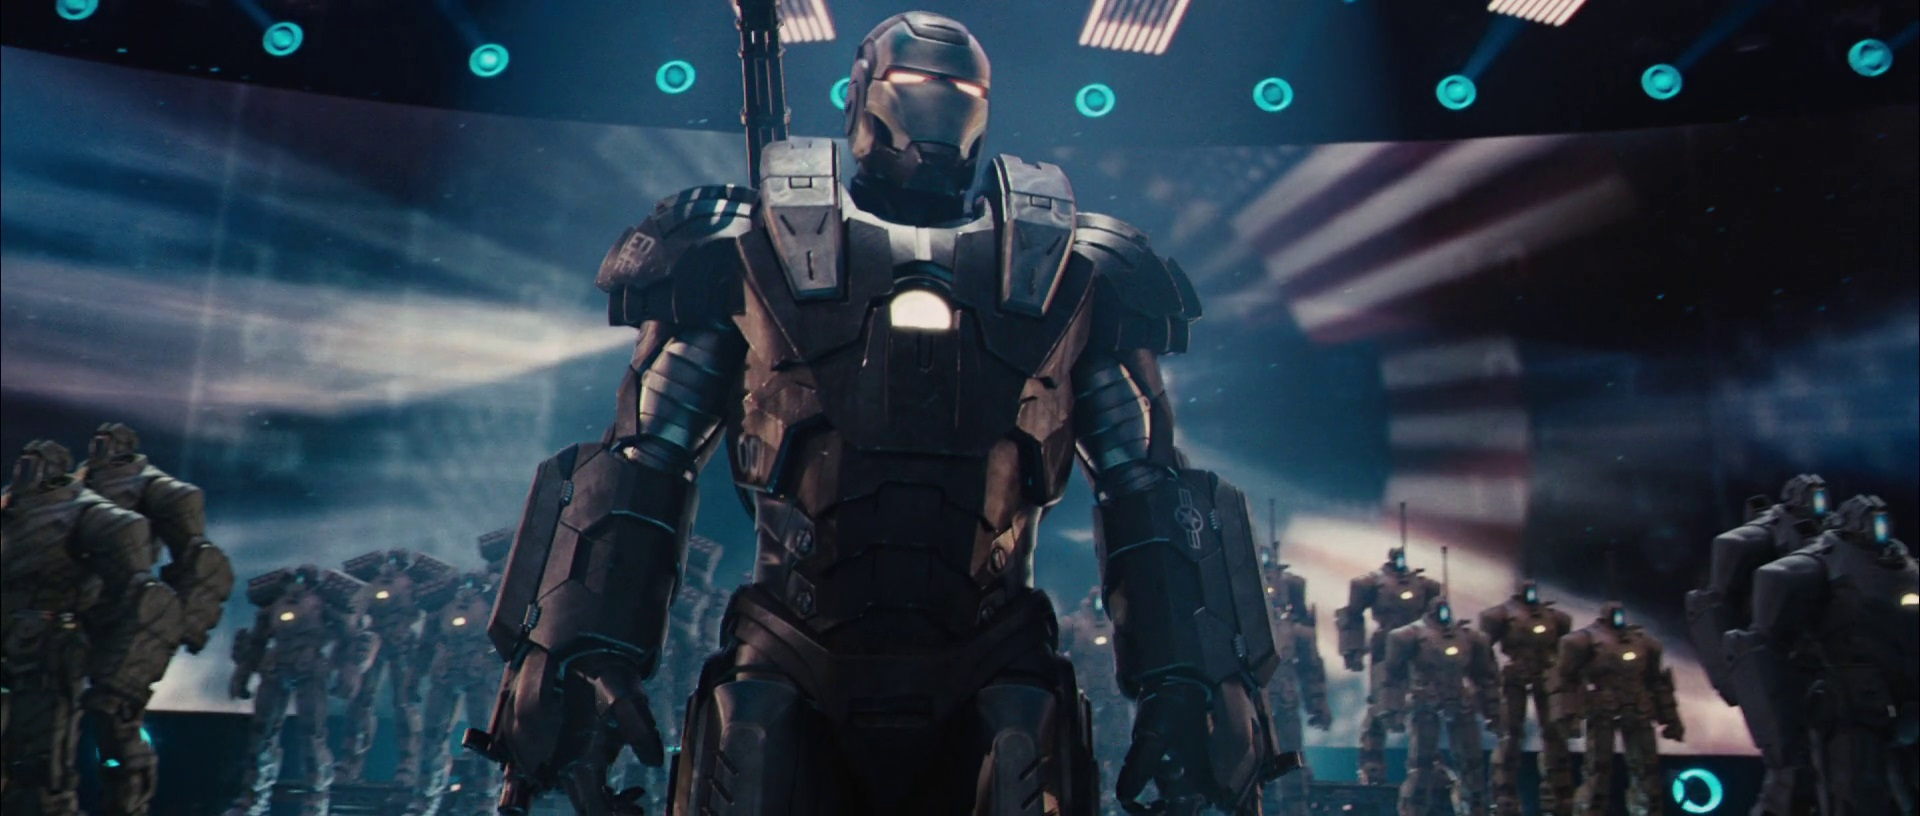 File:Ironman02 WarMachine.jpg